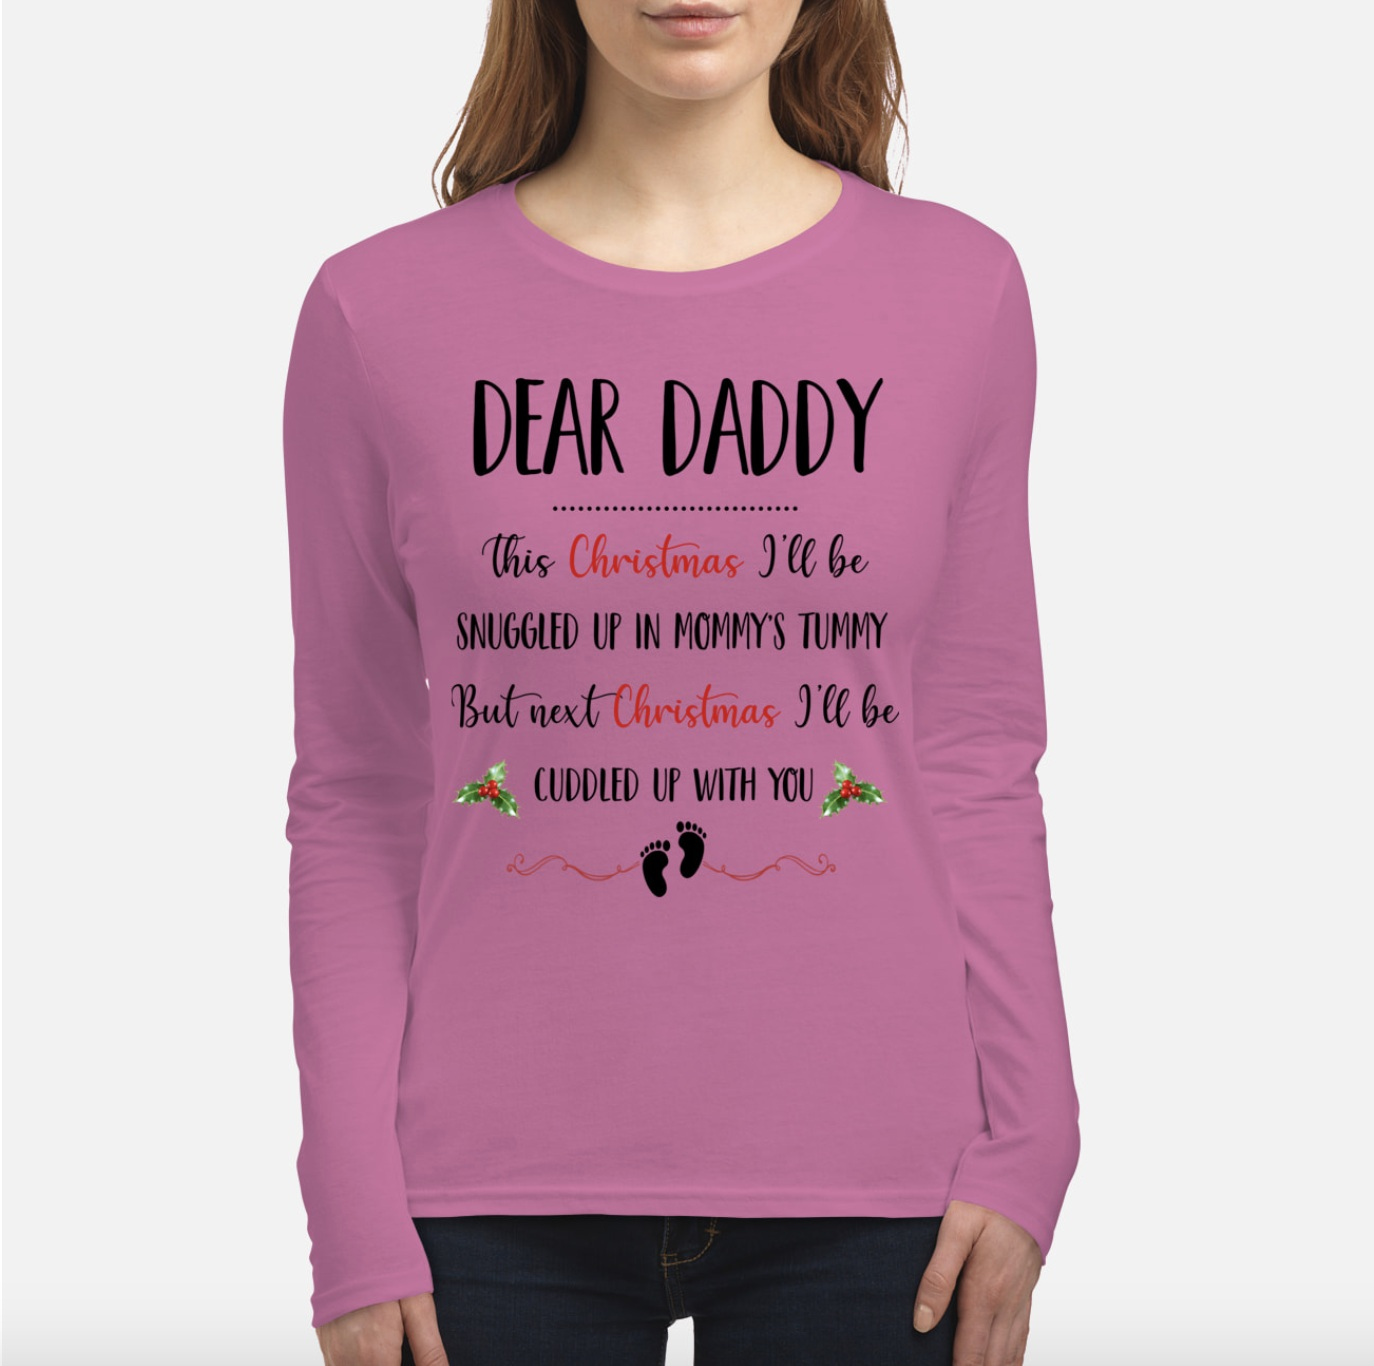 Dear daddy this christmas I'll be snuggled up in mommy's tummy long sleeve